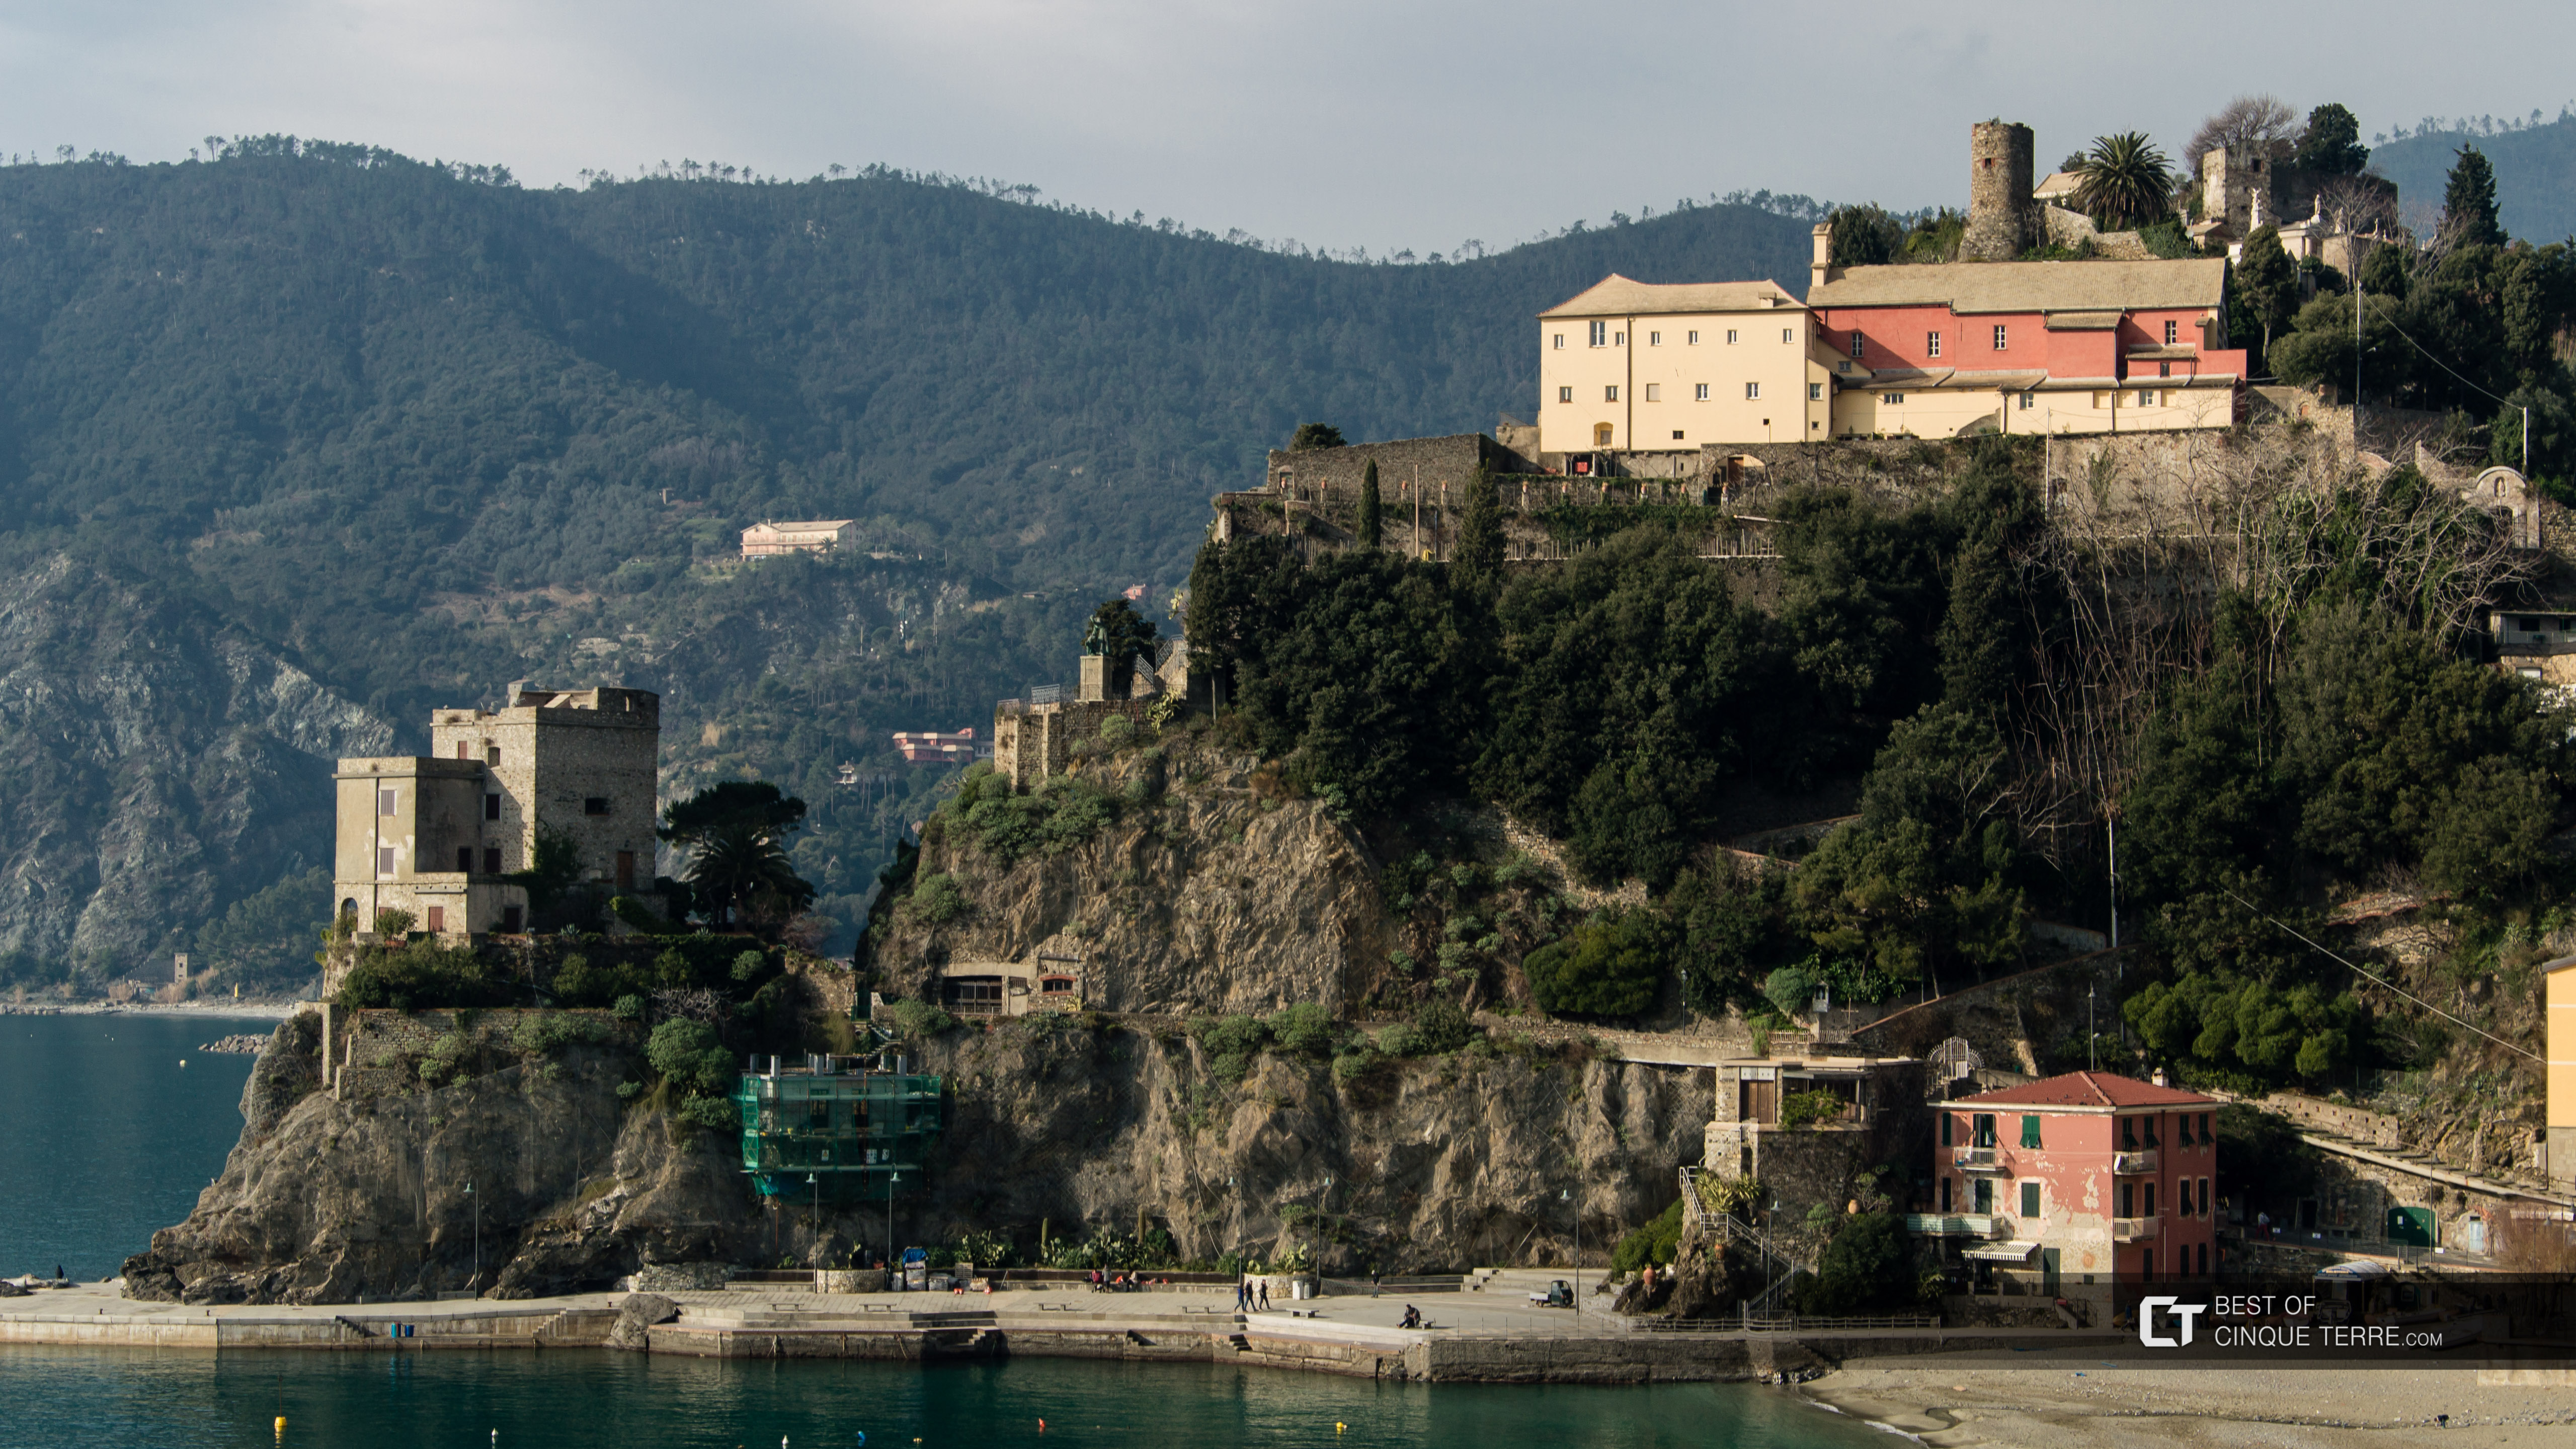 Capuchin monastery and the Aurora tower, Monterosso al Mare, Cinque Terre, Italy